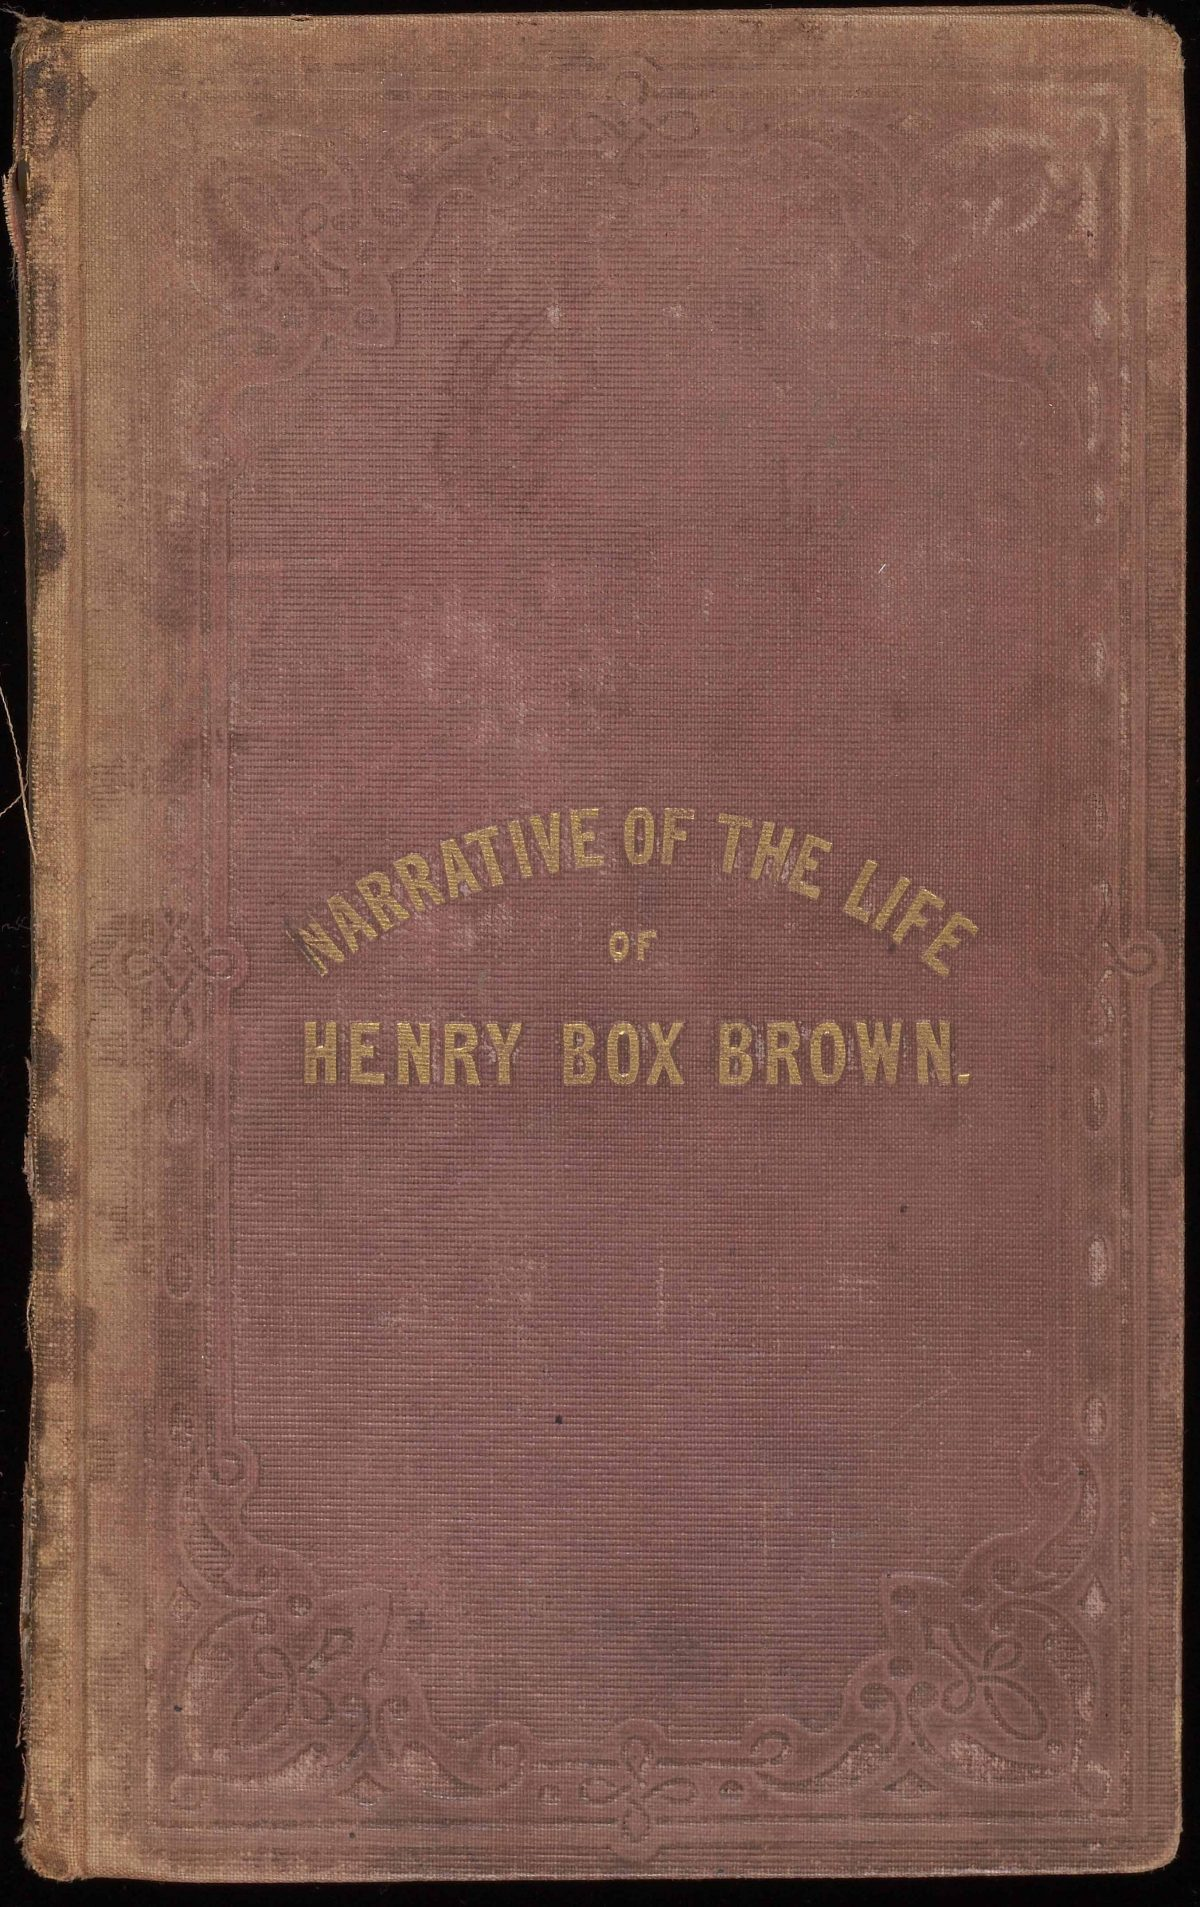 Cover of Narrative of the Life of Henry Box Brown